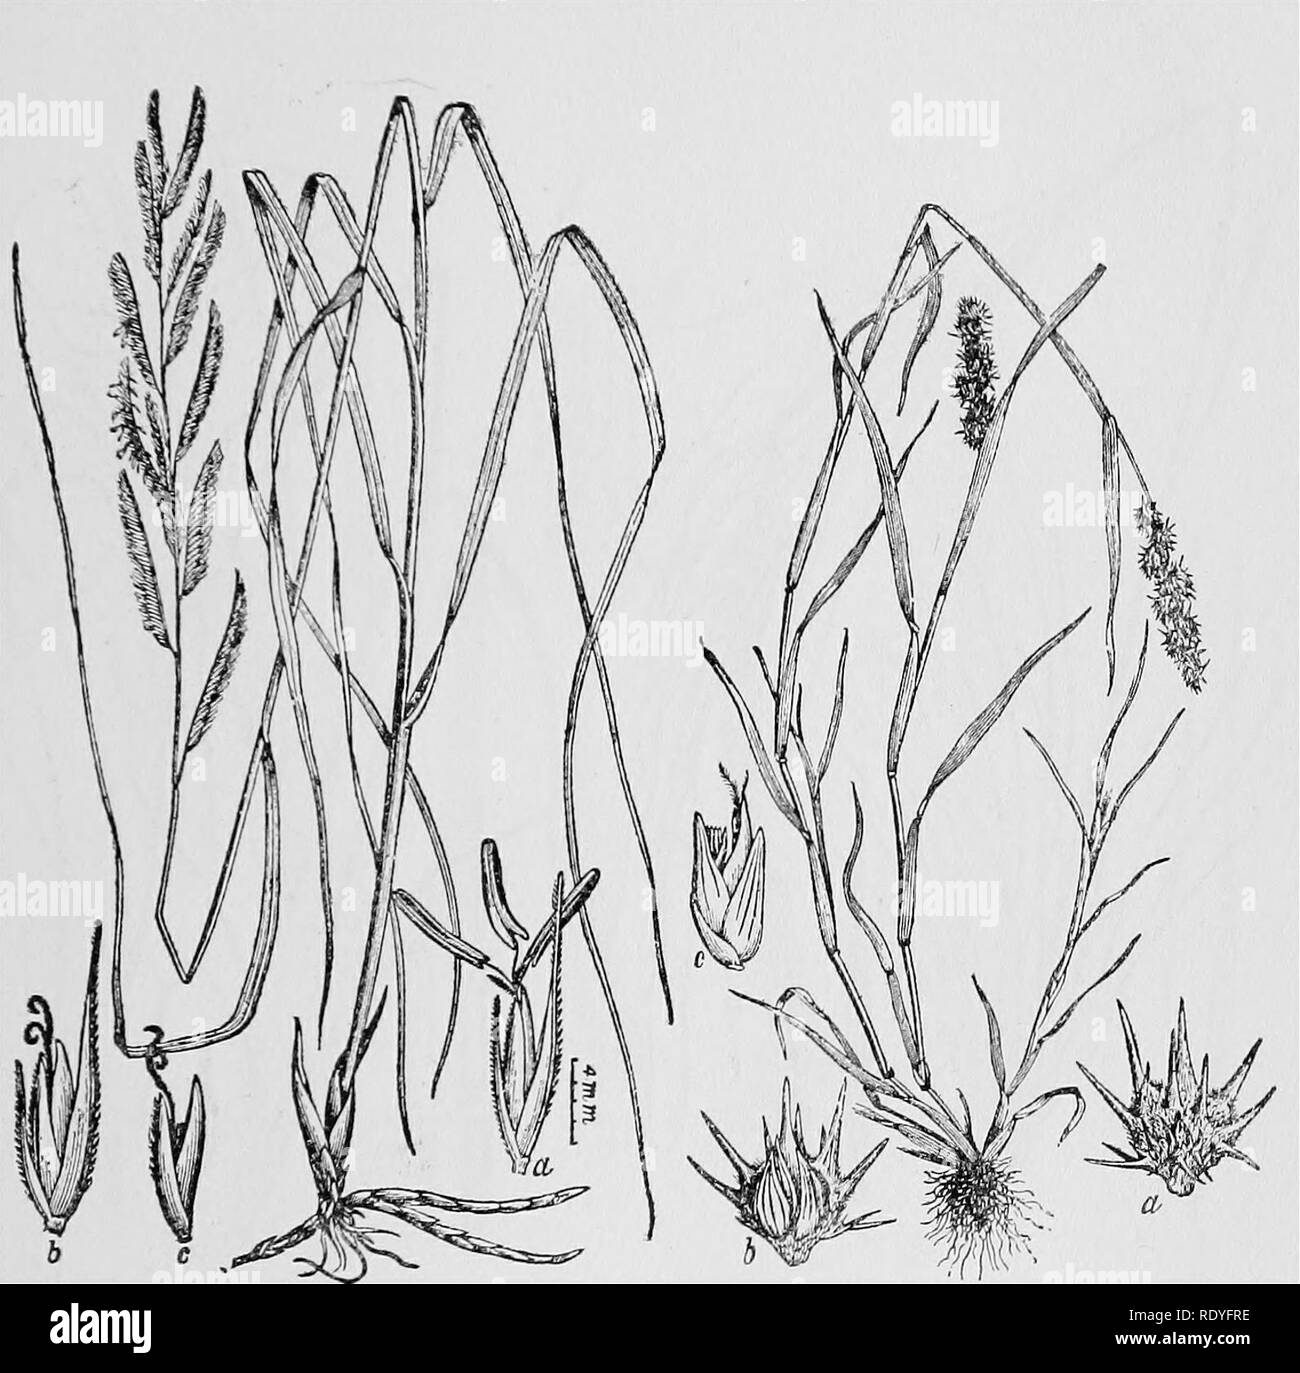 10af21aa8b9b9 Sharp Leaves Black and White Stock Photos   Images - Alamy